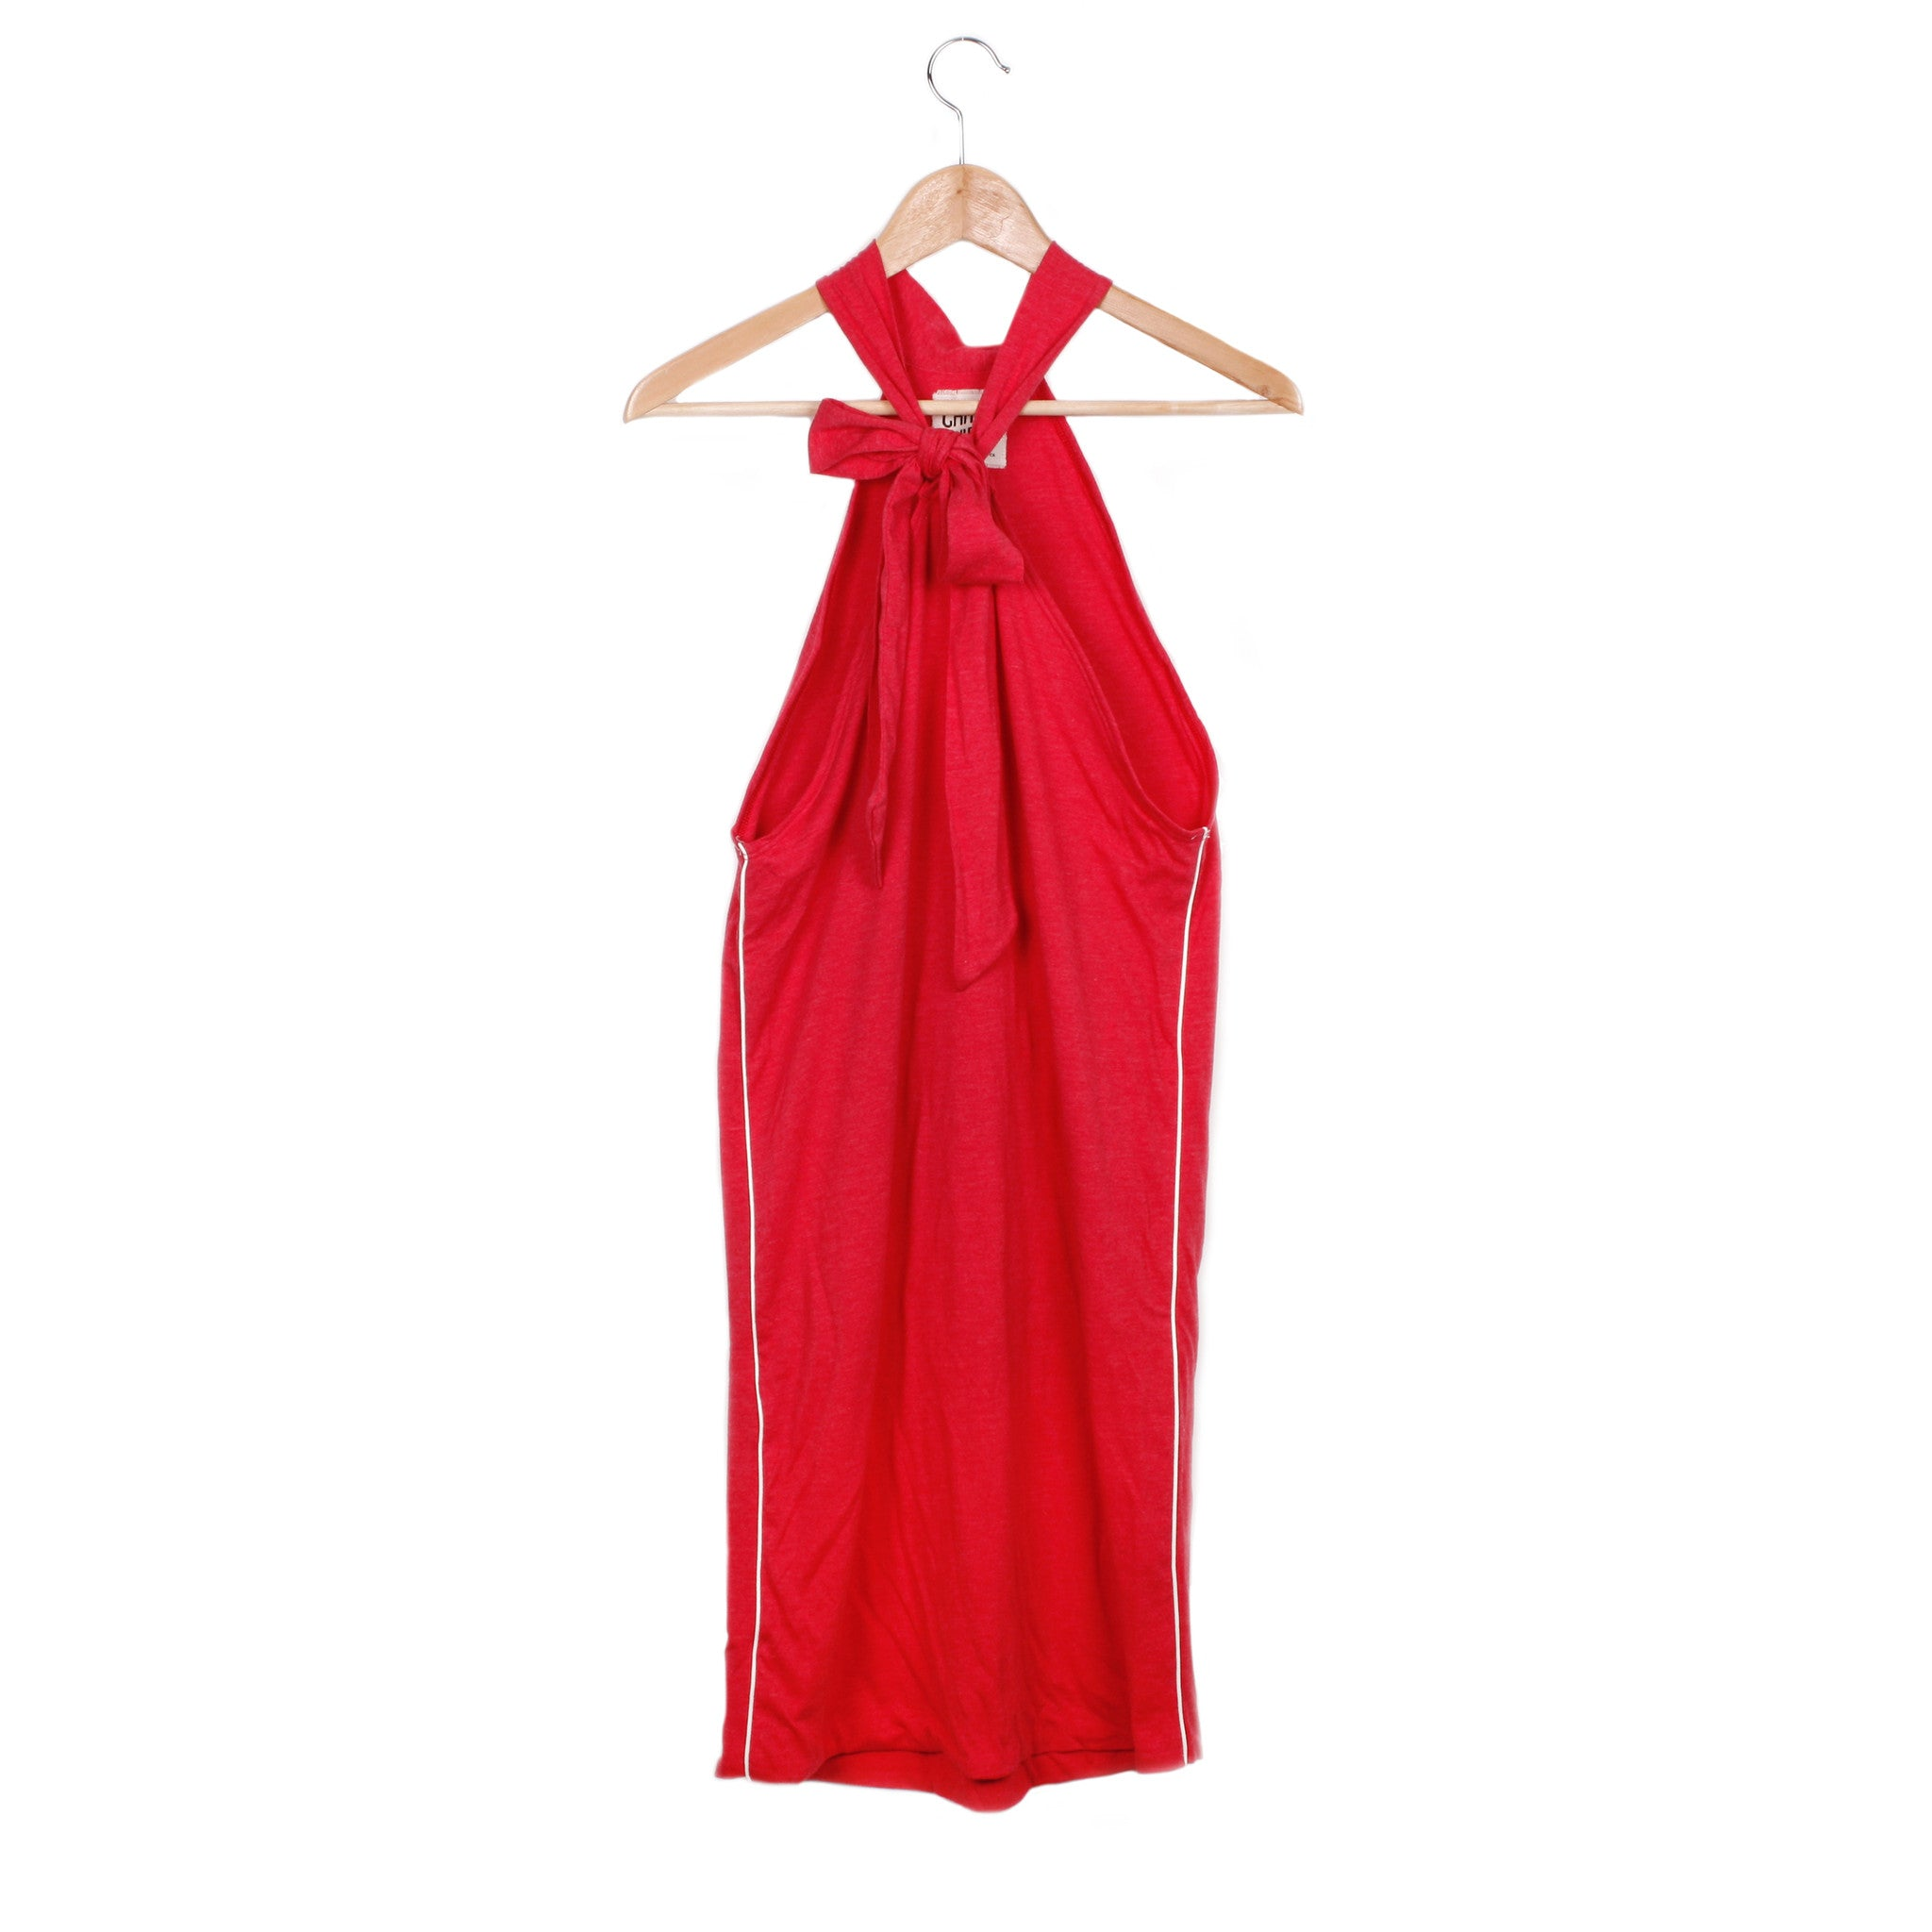 LAYLA DRESS - HEATHER RED / CREAM PIPING / SMALL - CAMP Collection - 1